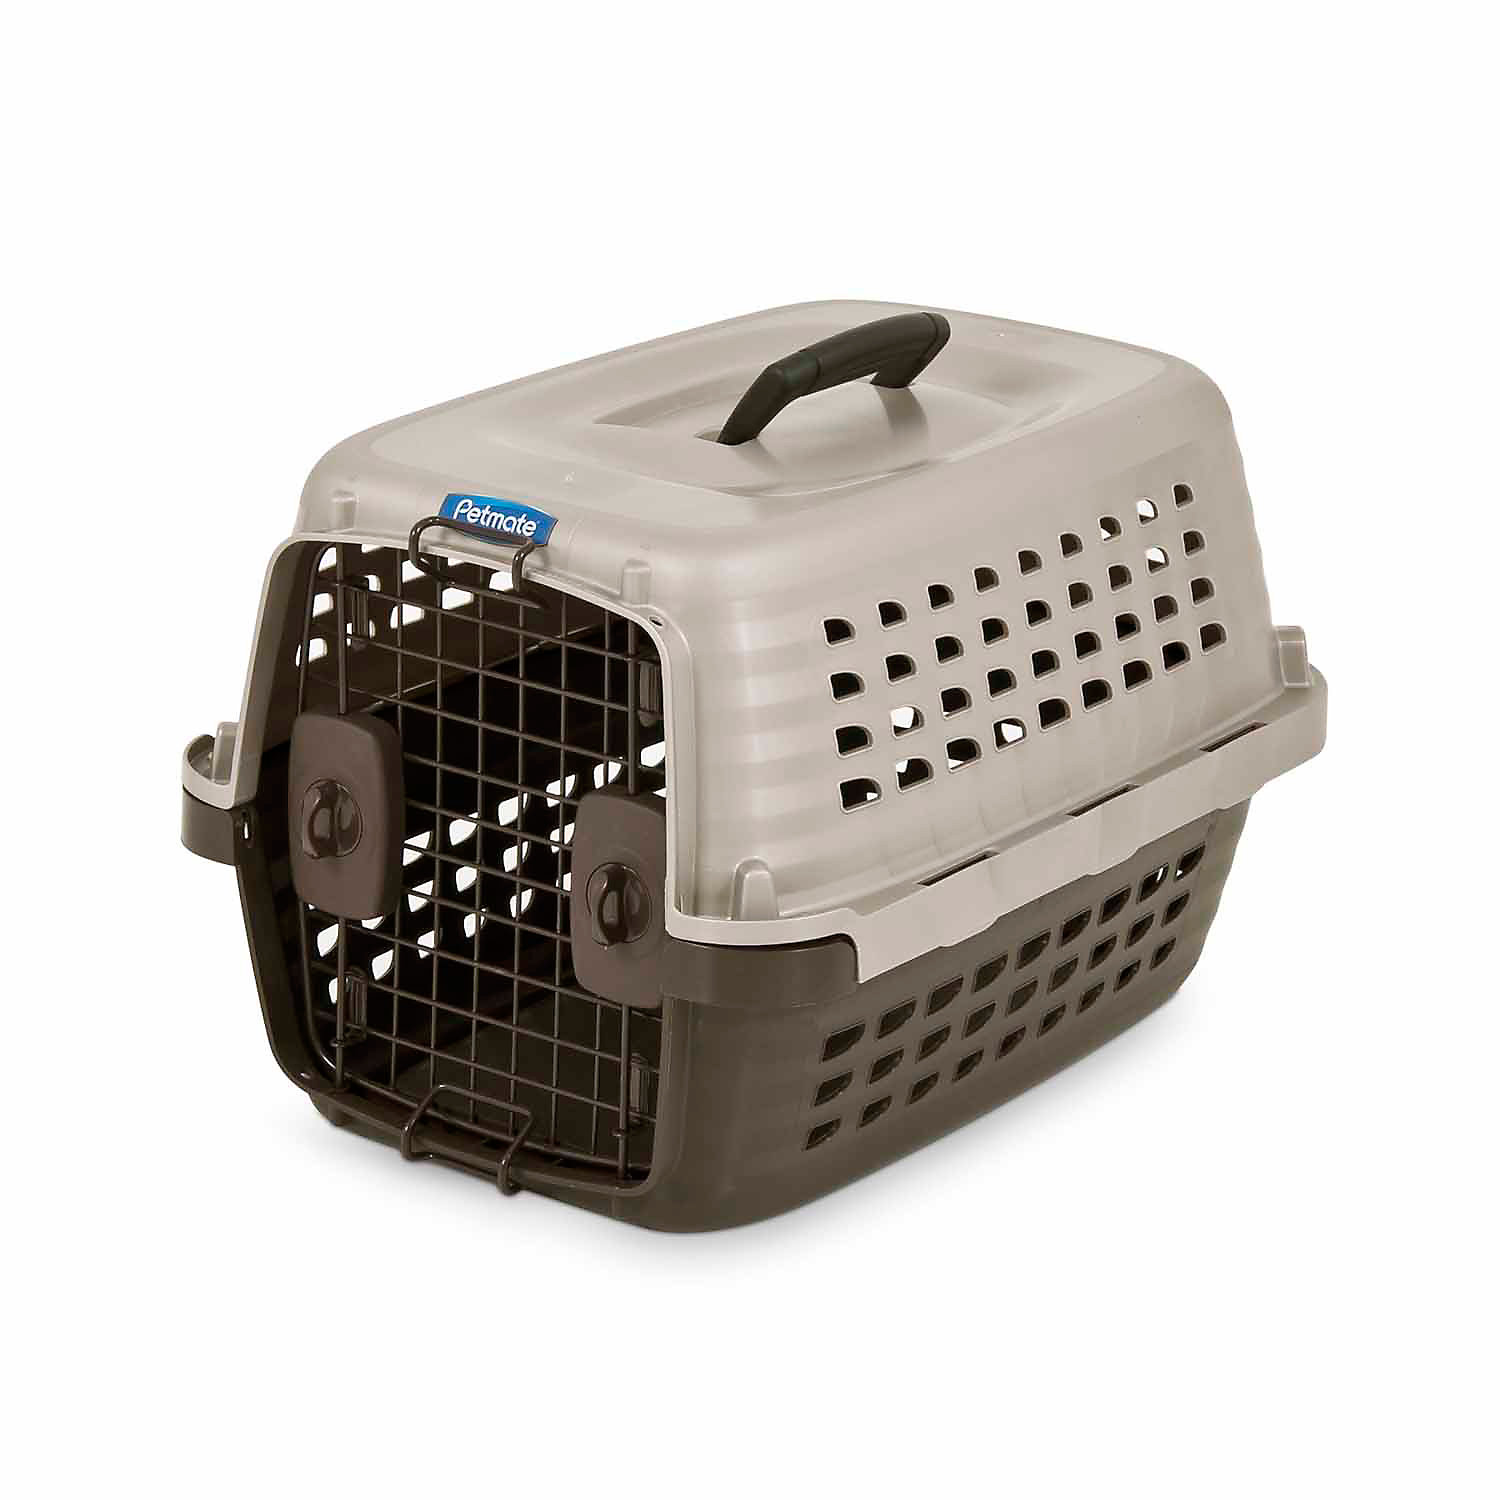 Petmate Navigator Pet Kennel 19 L X 12.7 W X 11.5 H Xx Small Brown